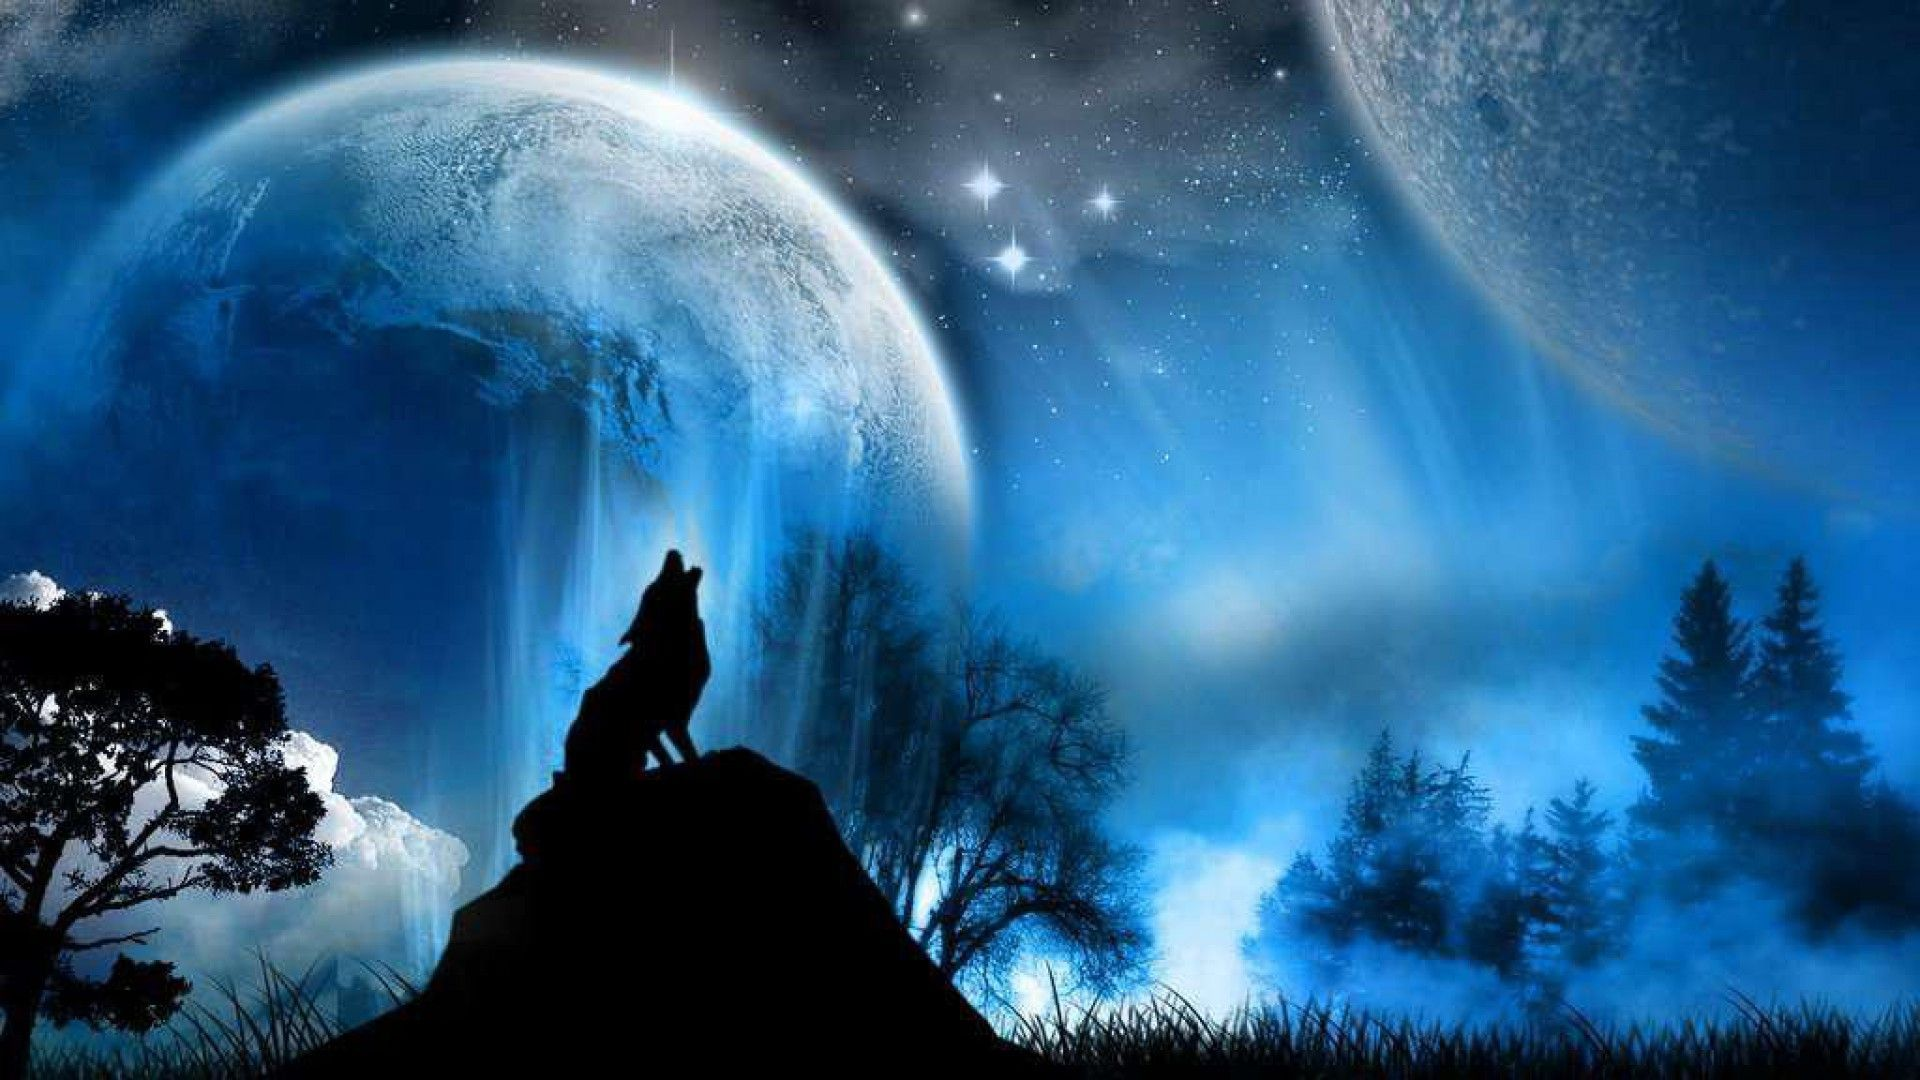 Wolf Wallpapers Free Download | Wallpapers, Backgrounds, Images .